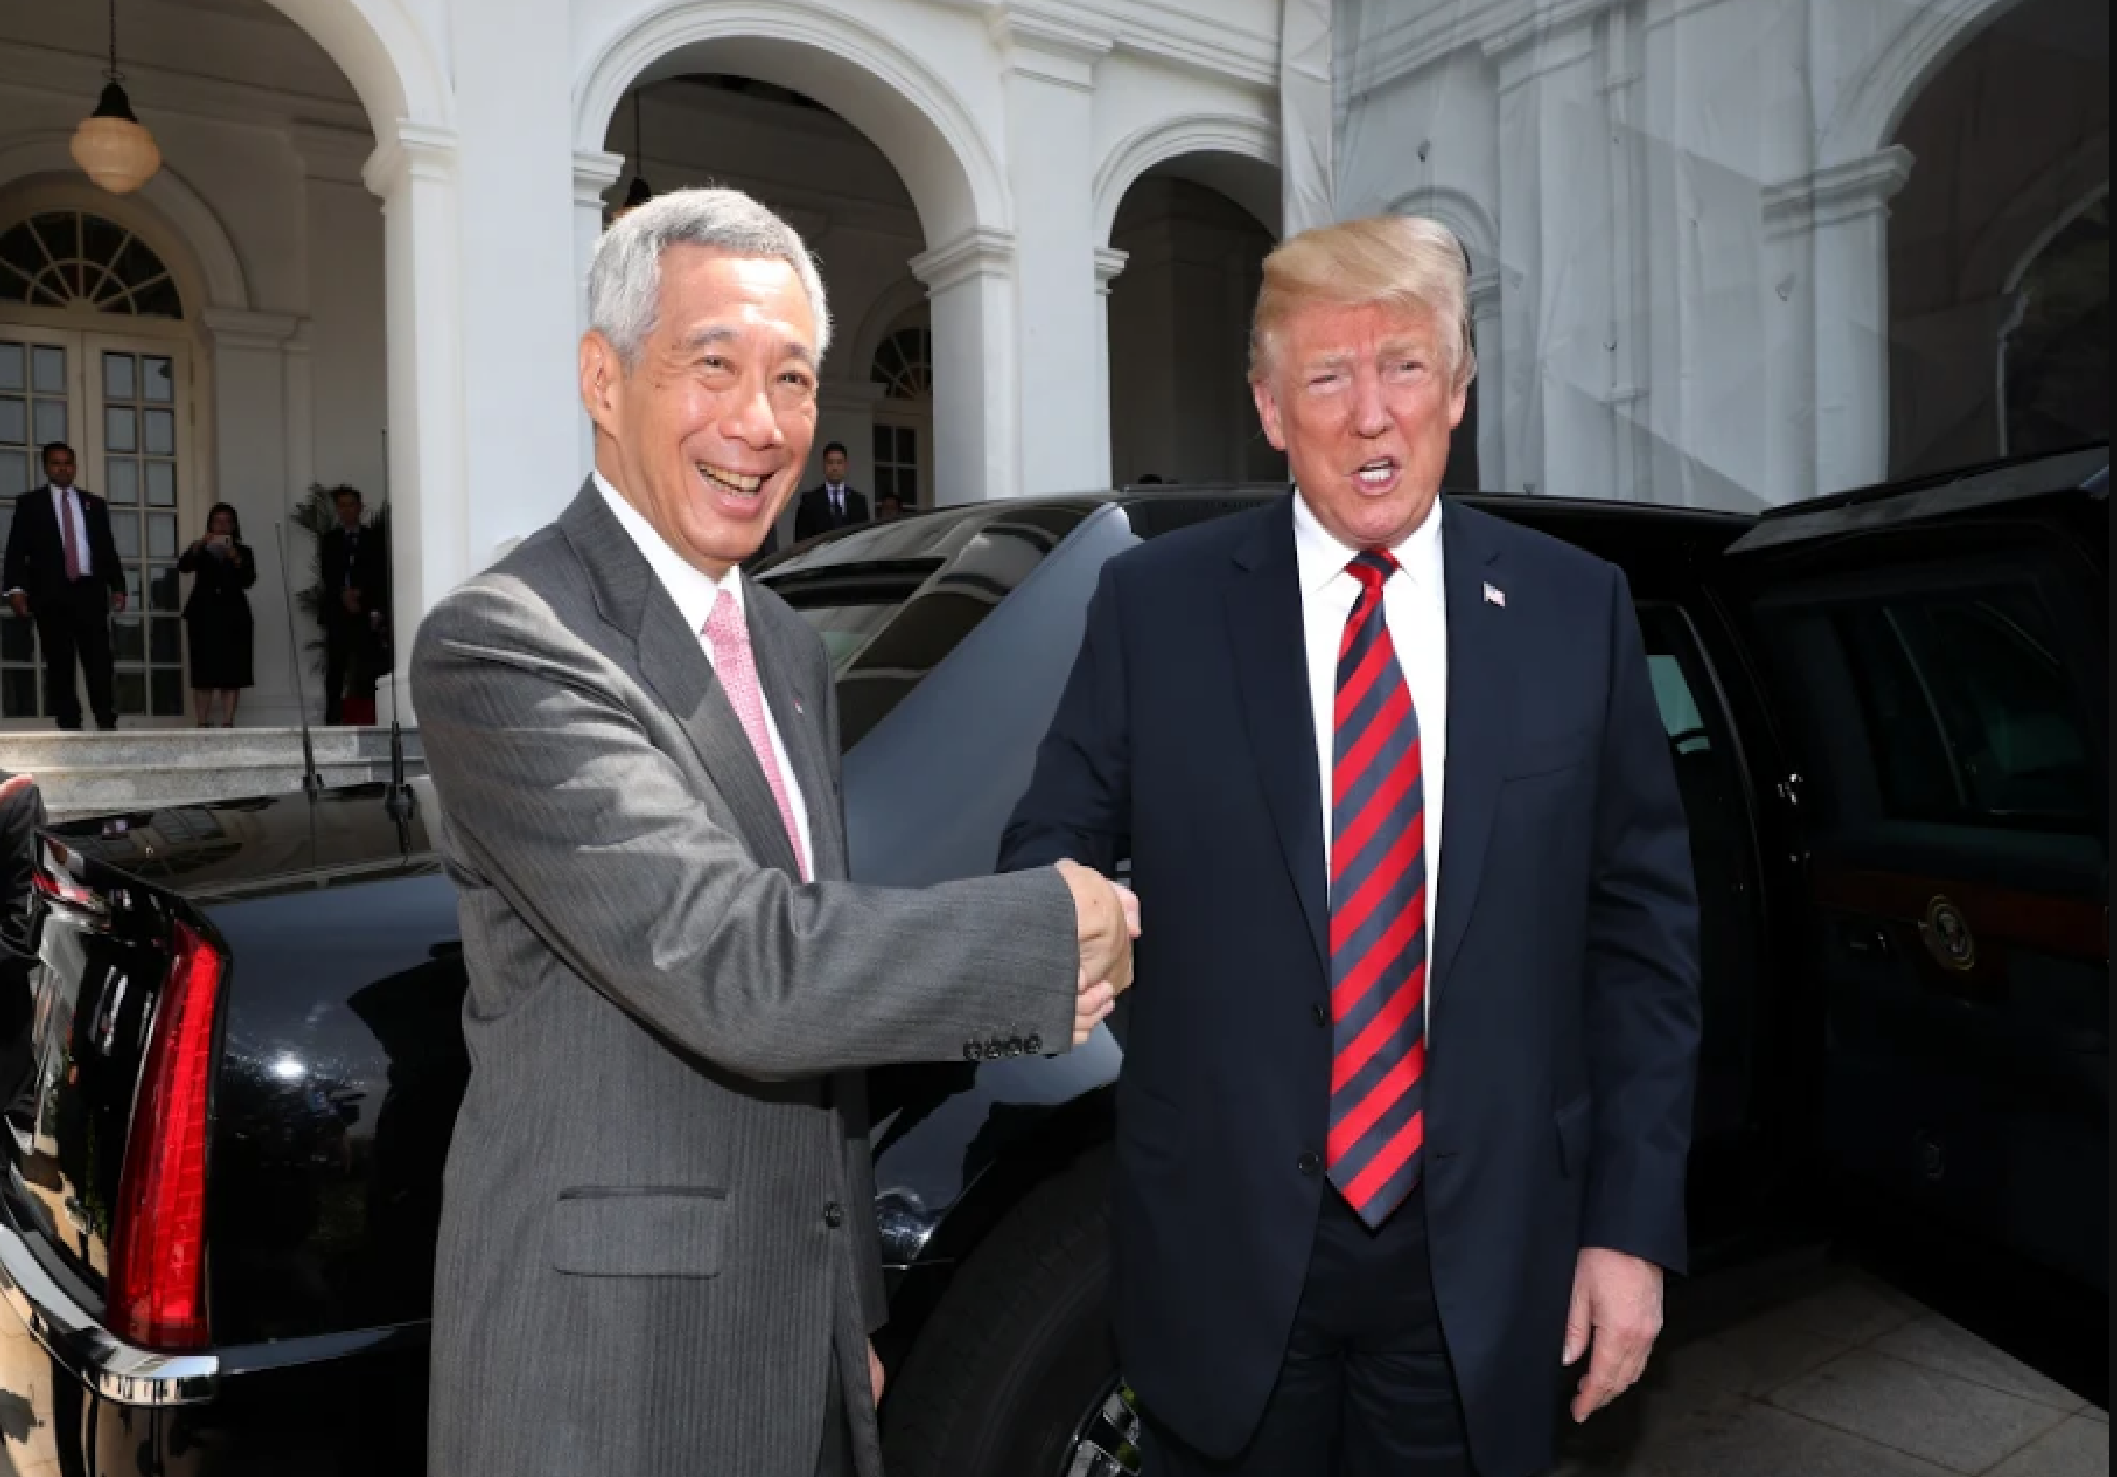 Prime Minister Lee and President Trump had a good discussion on a wide range of regional and global developments.